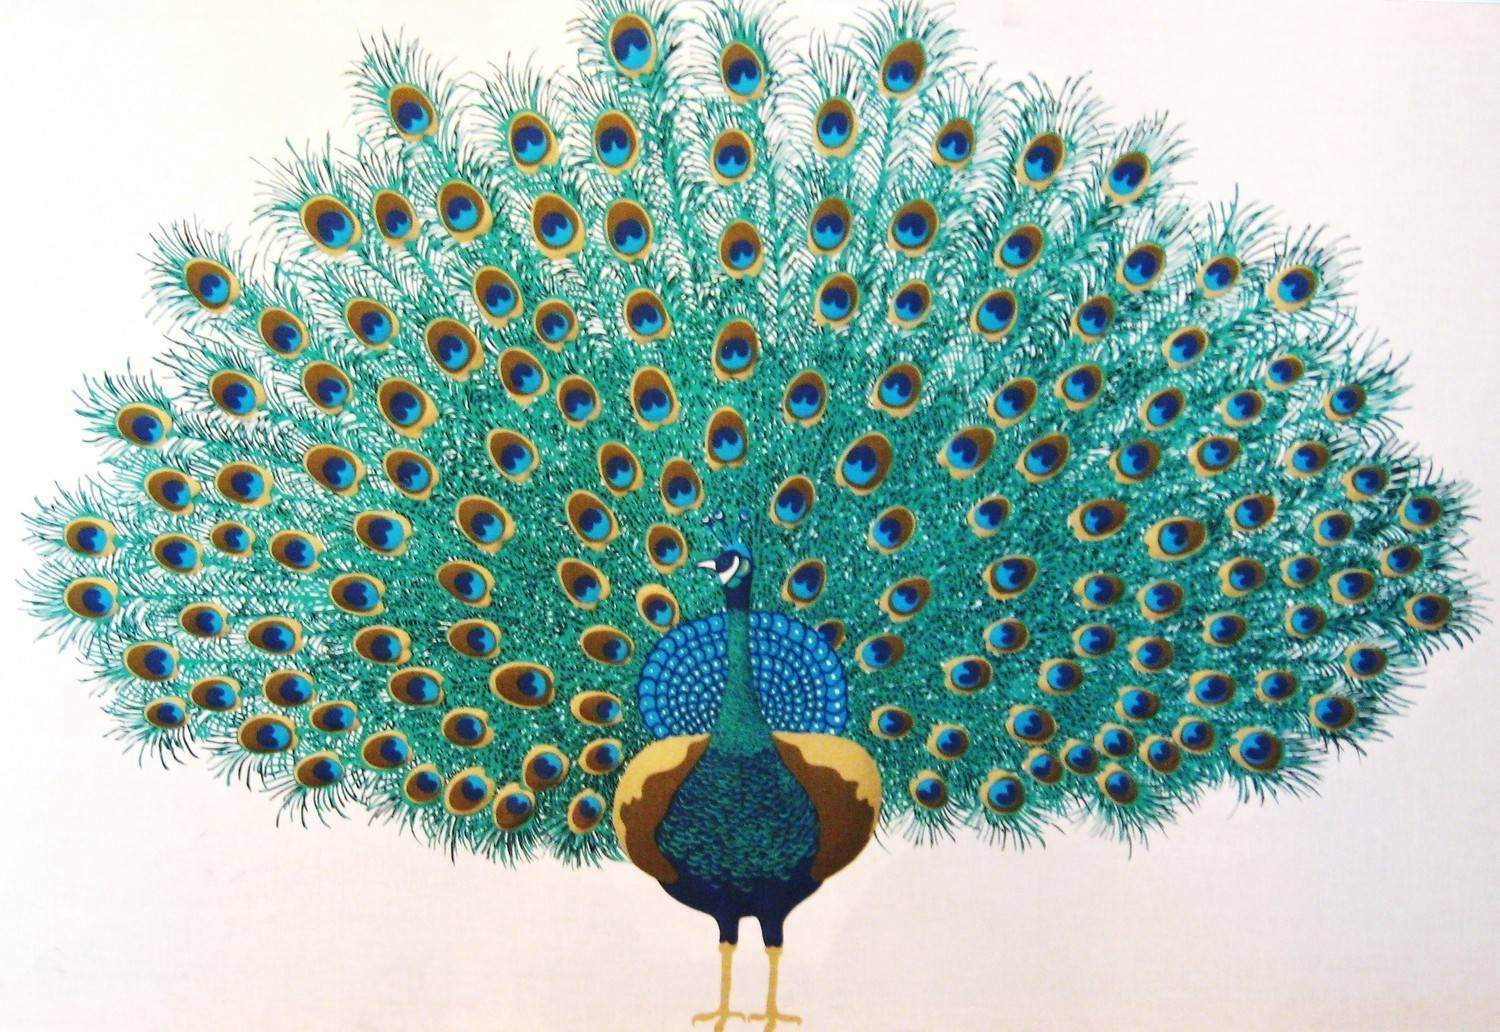 Peacock Images Art | Free Download Clip Art | Free Clip Art | On Pertaining To Most Recent Metal Peacock Wall Art (View 8 of 20)